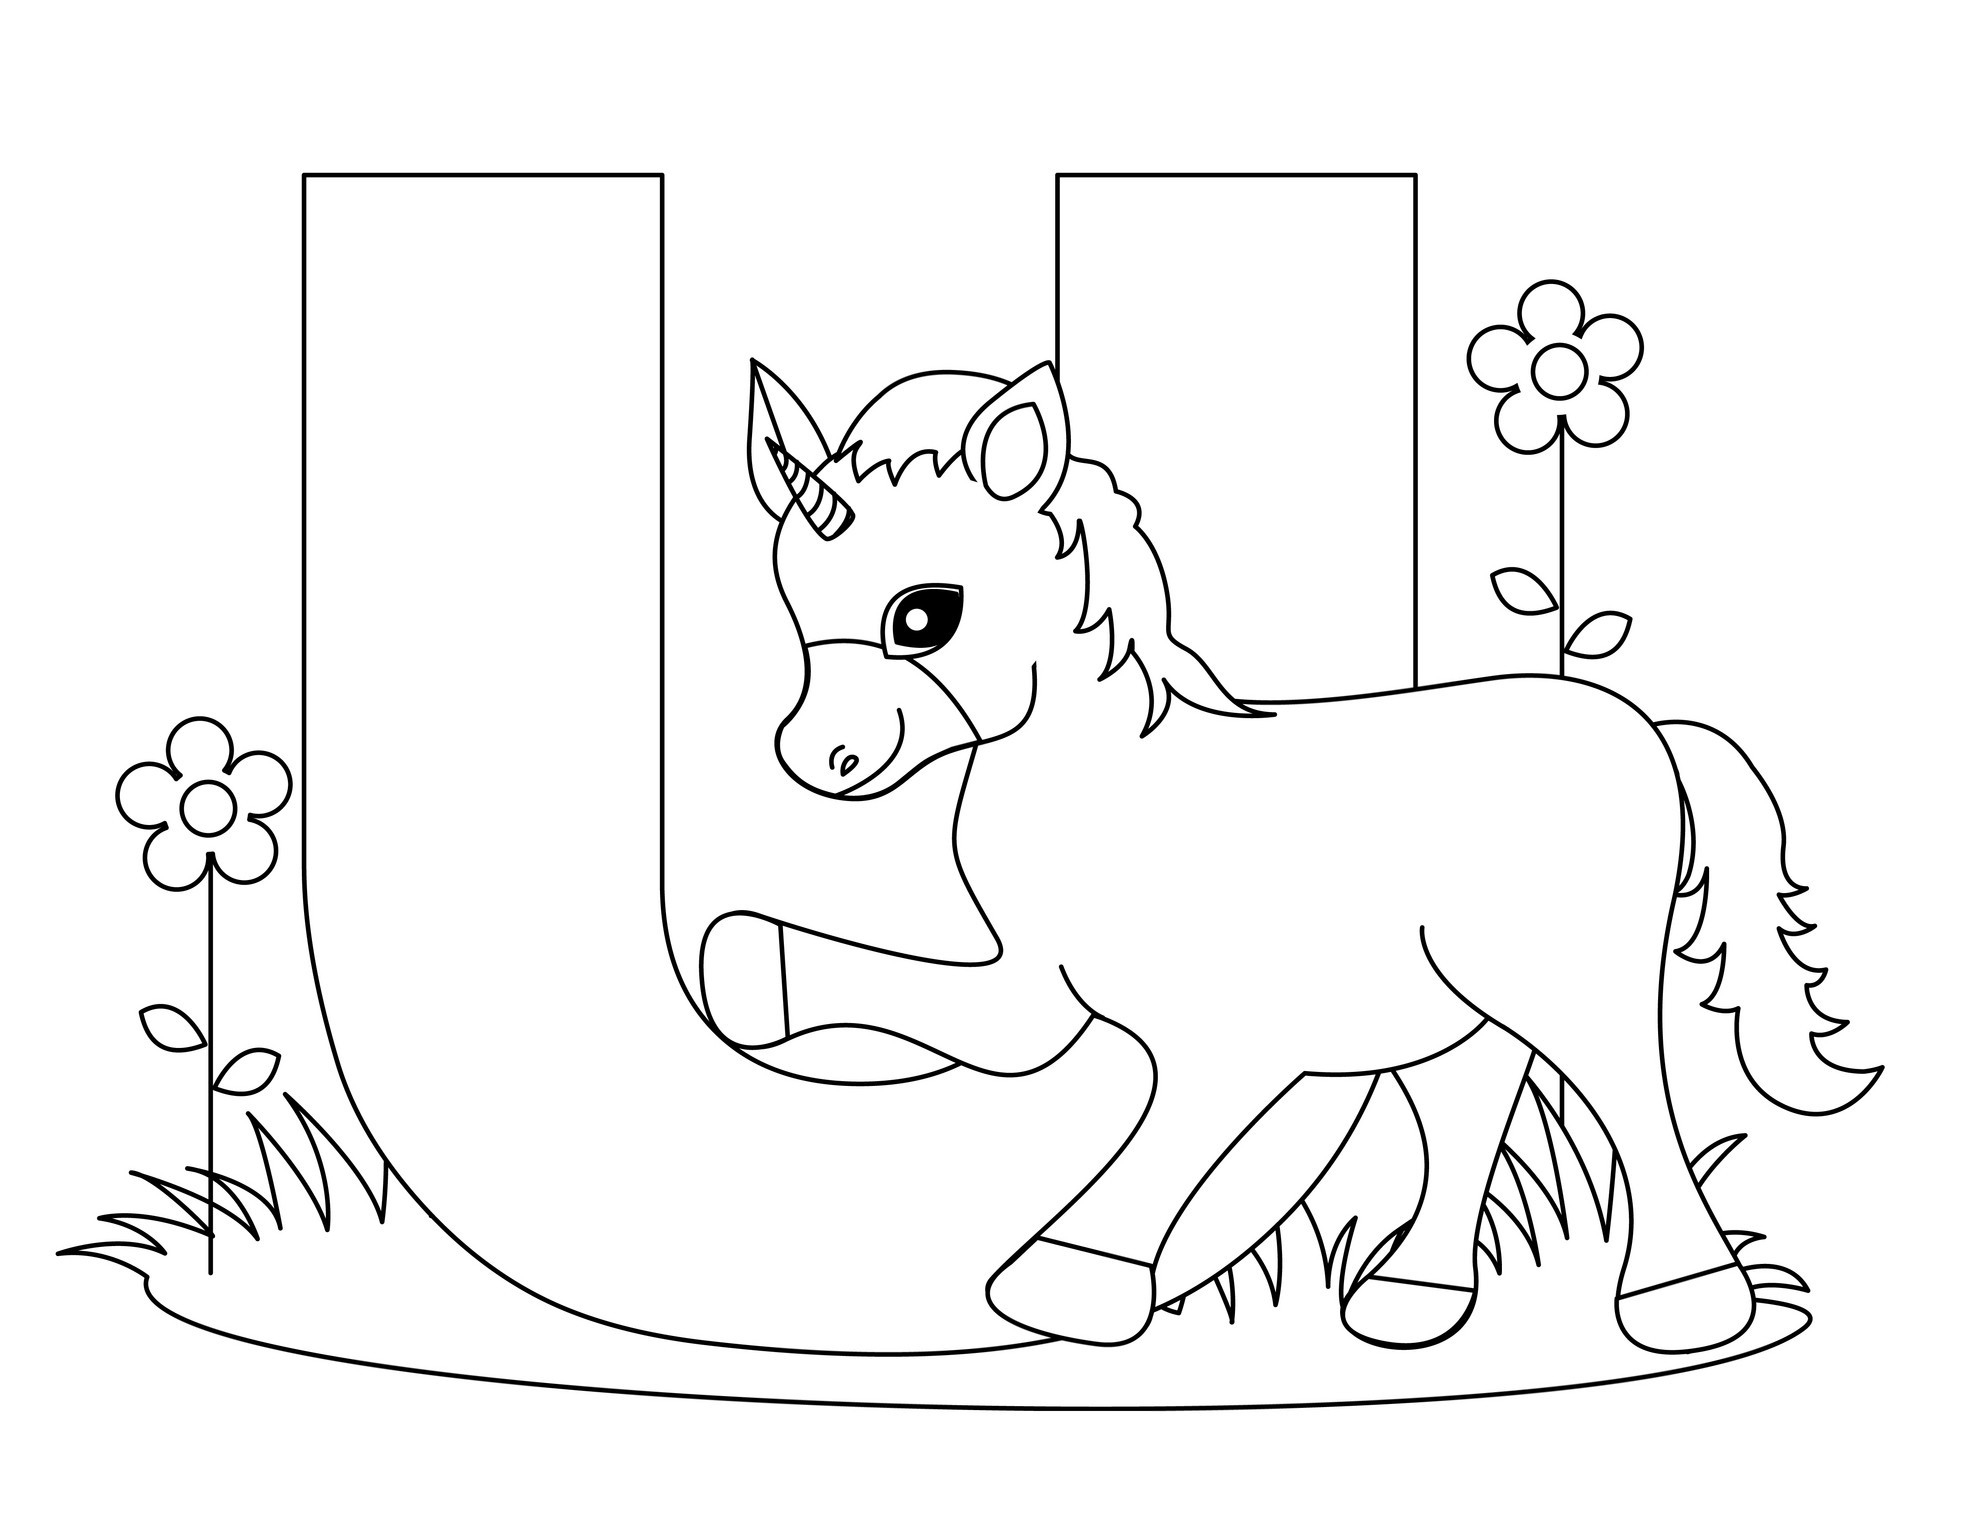 Free printable alphabet coloring pages for kids best Coloring book for kid free download